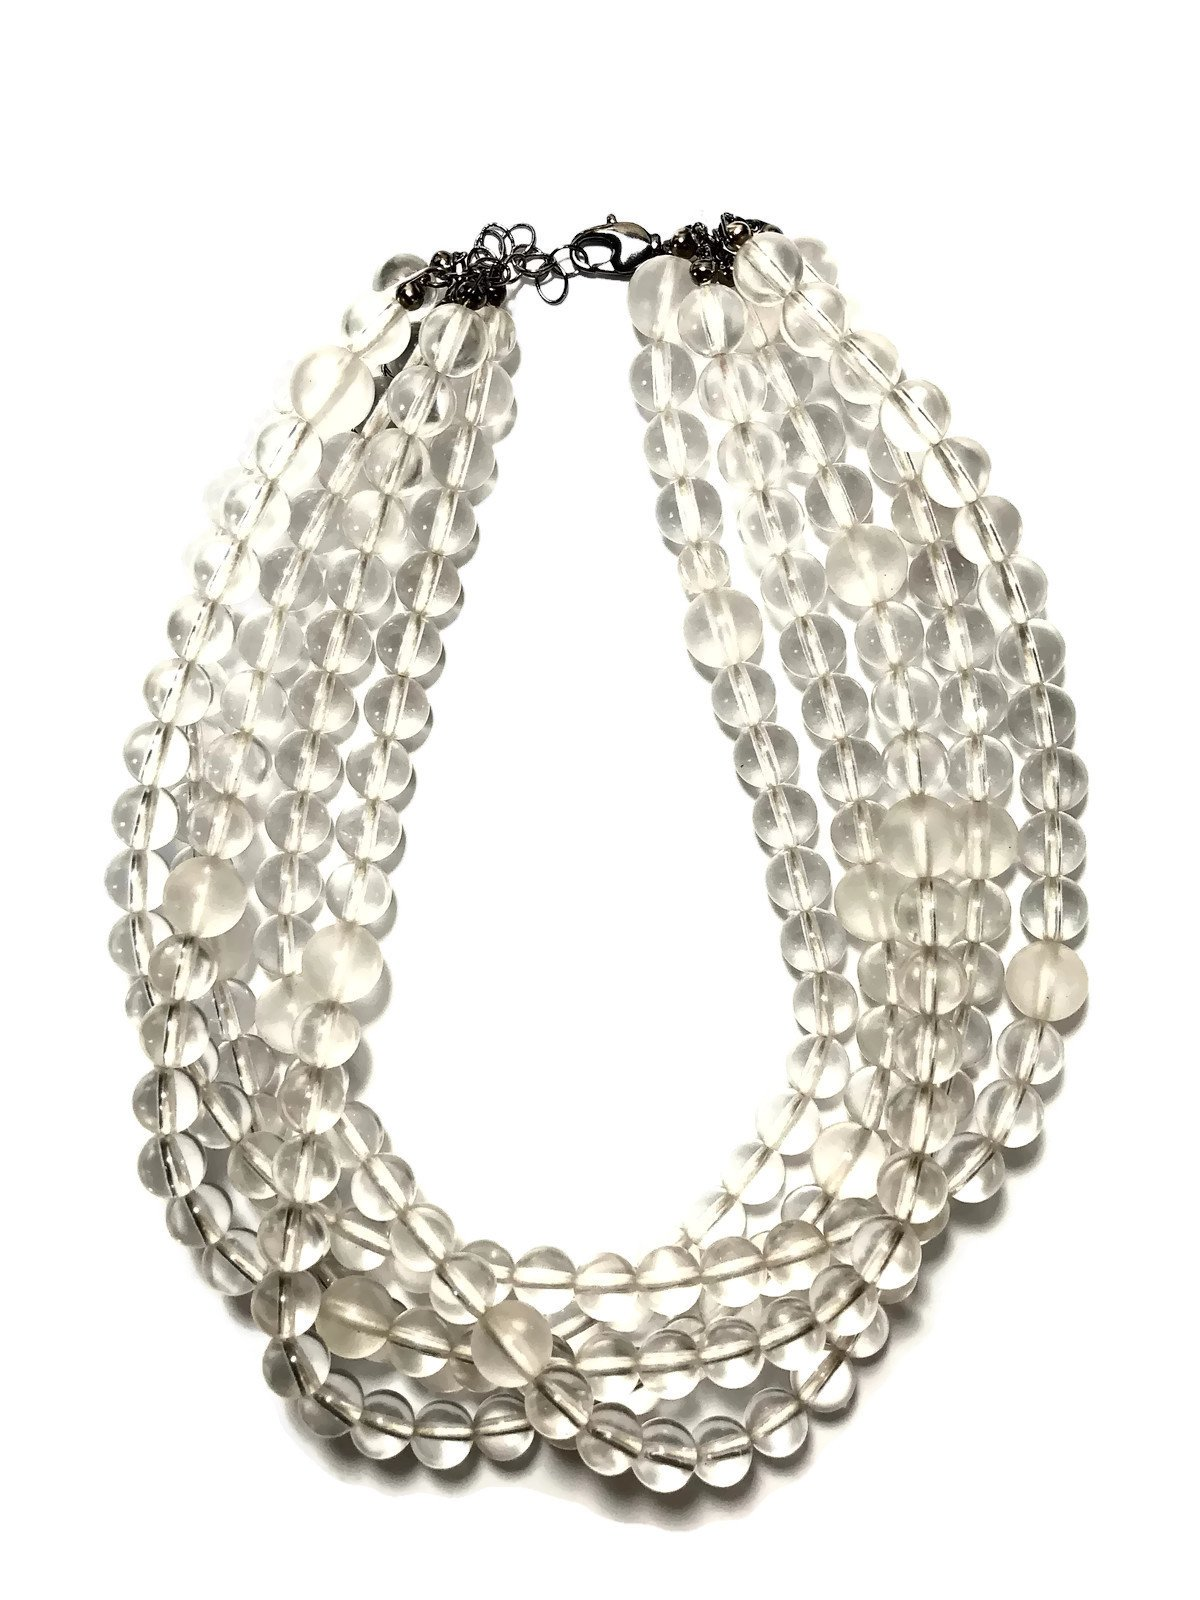 Leetie Lovendale Clear Beaded Lucite Multi-Strand Statement Sylvie Necklace